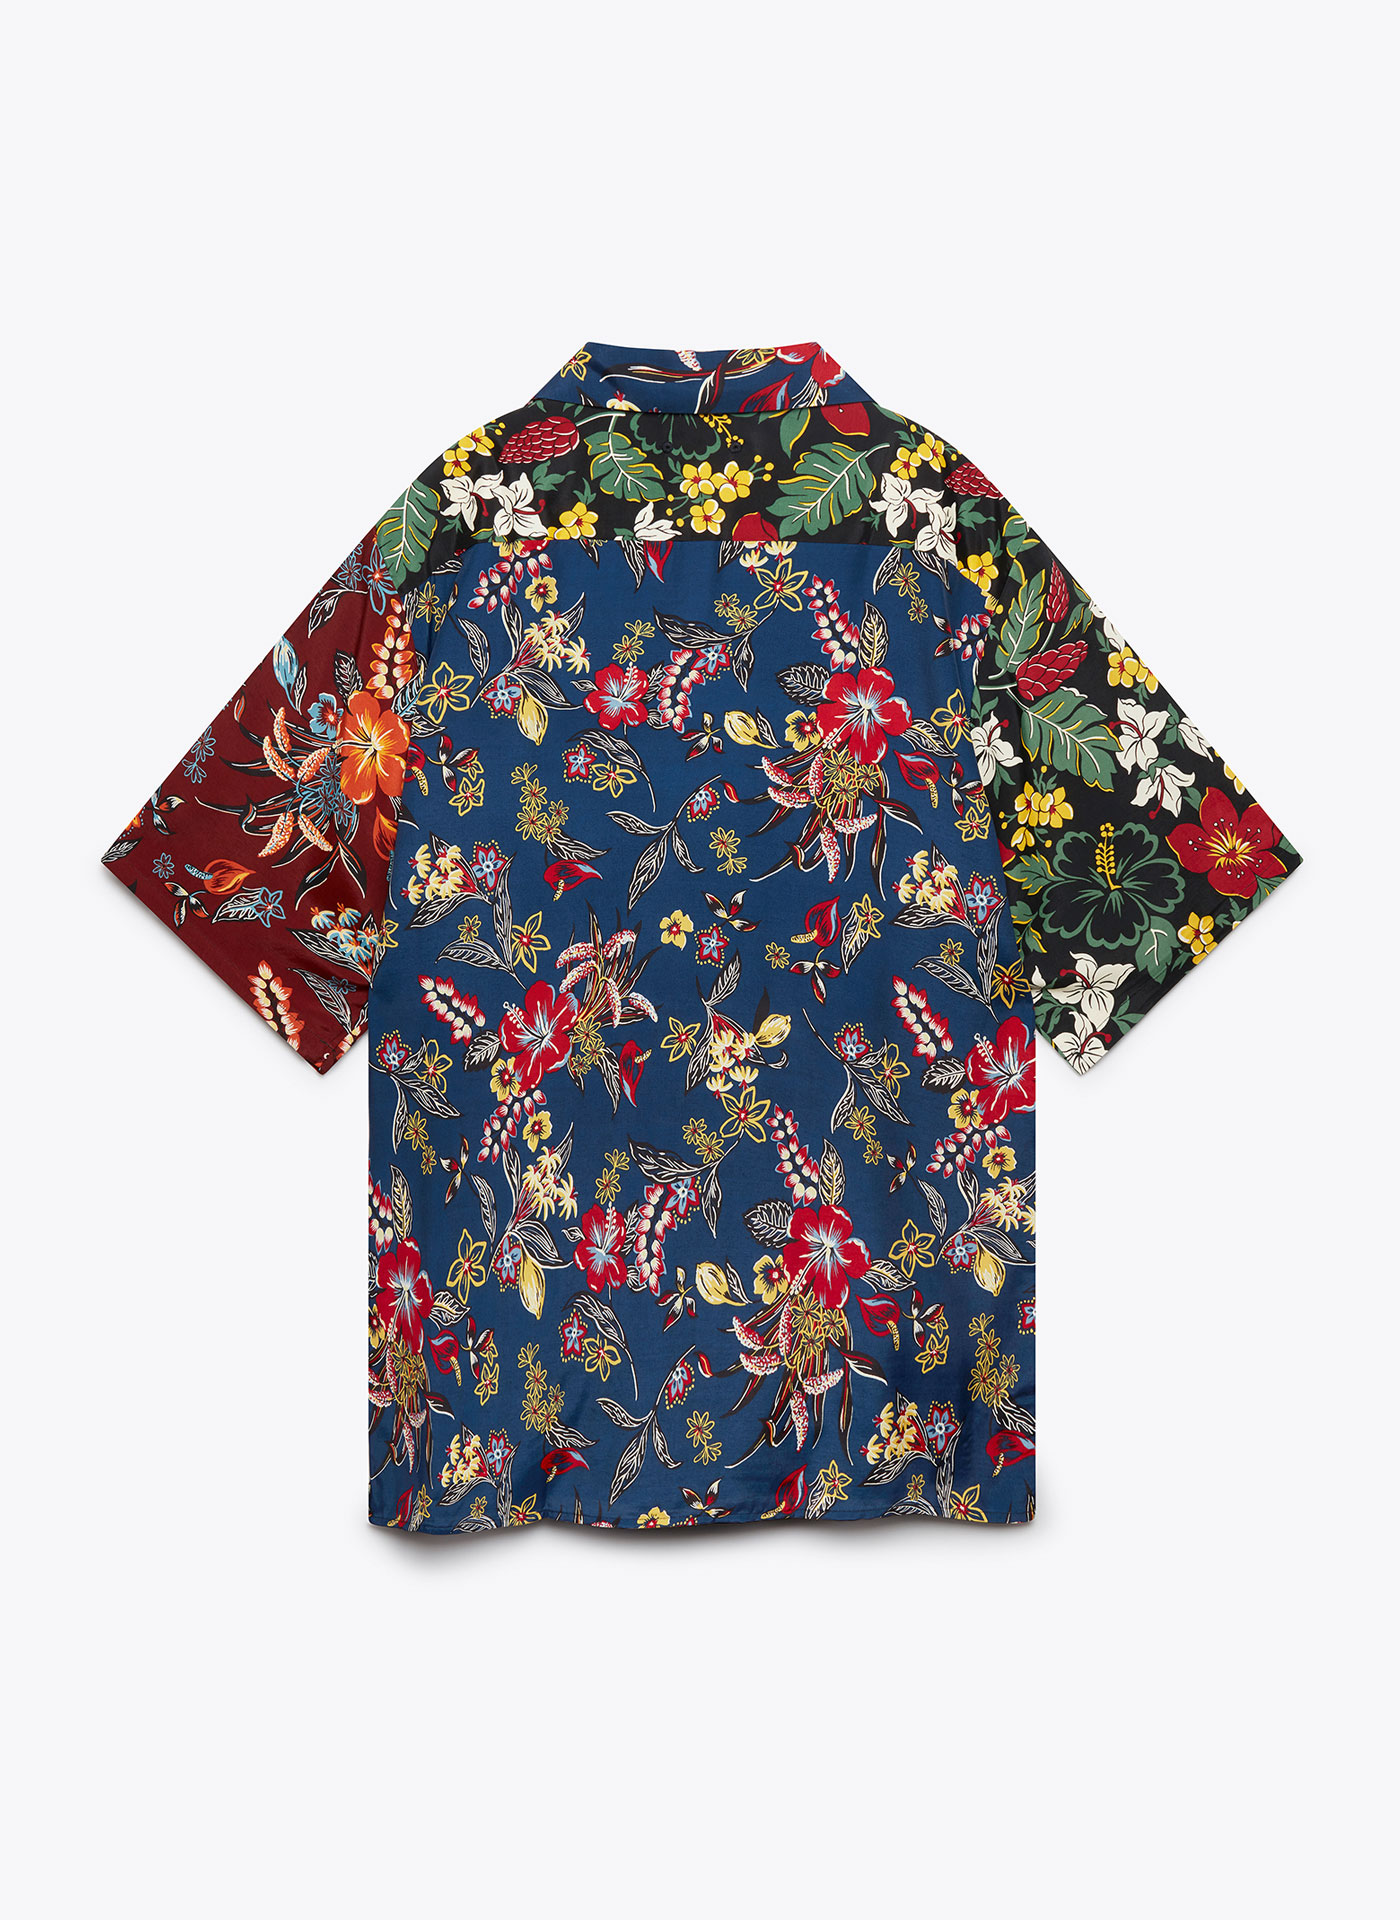 floral patterned t-shirt with buttons from the back